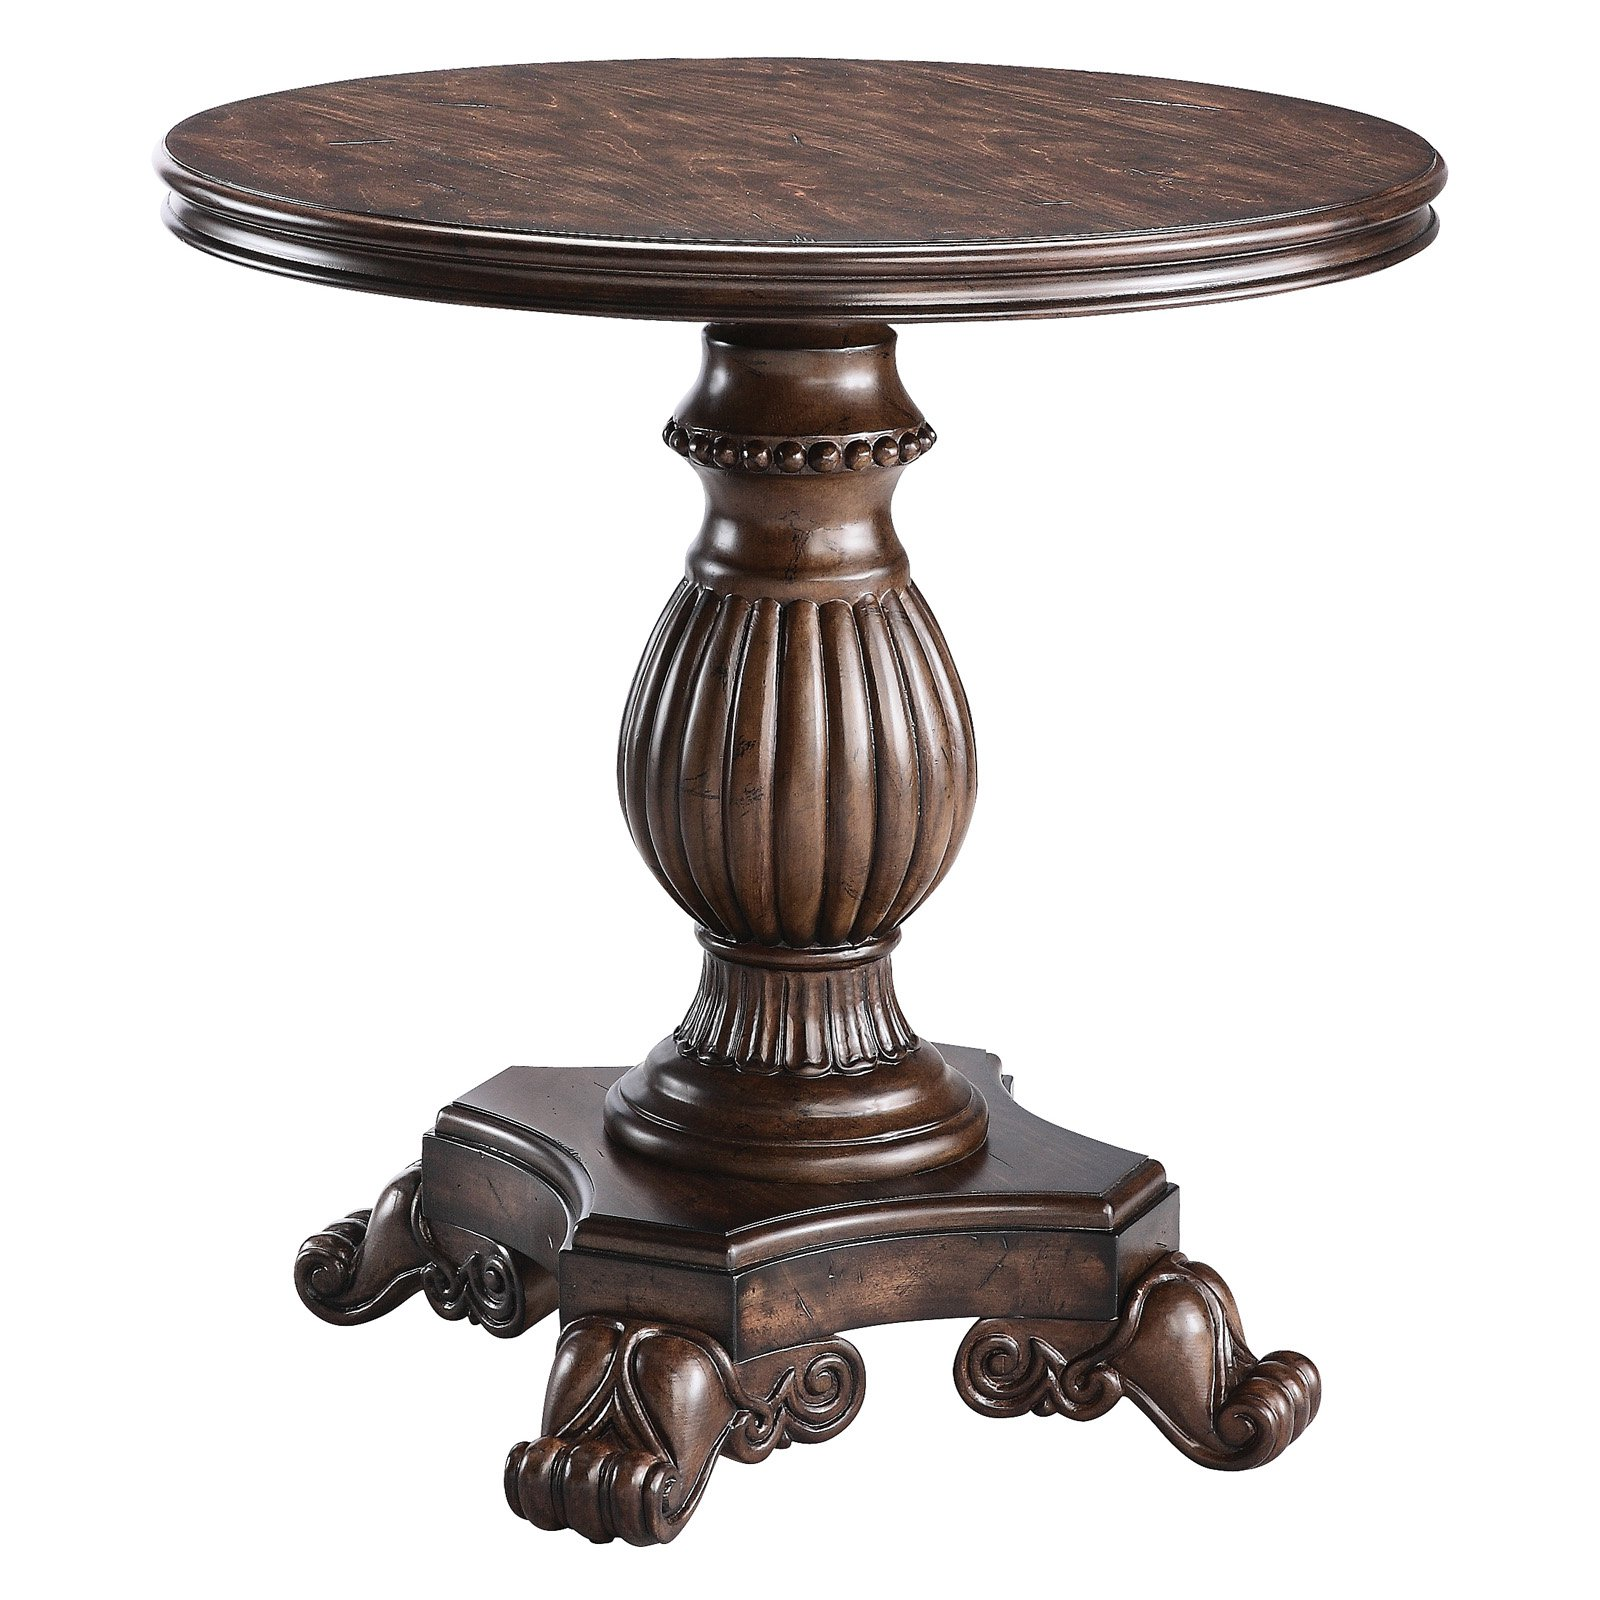 exclusive round pedestal end table house design half accent stein world reclaimed dark metal beach furniture behind sofa bar hairpin legs plans adjustable feet tables target